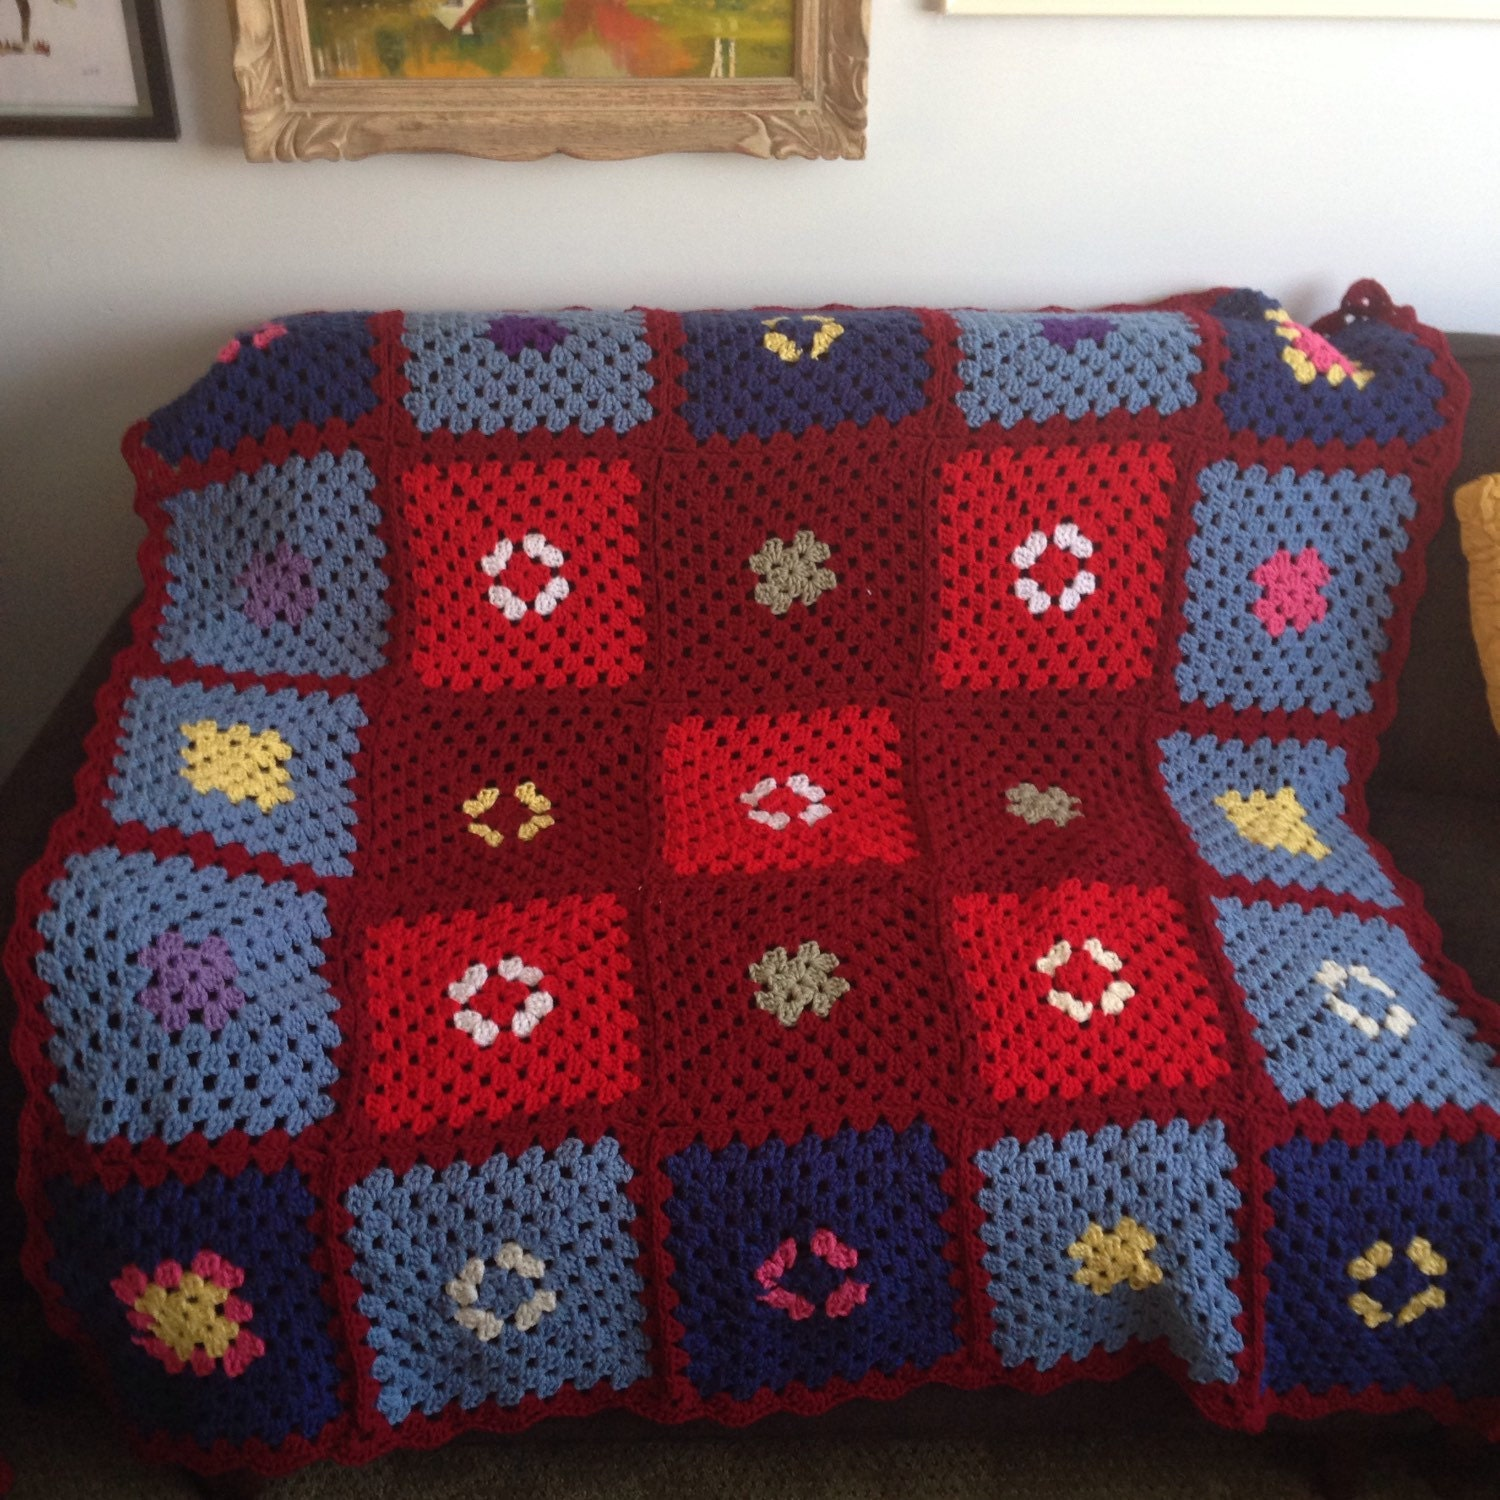 Vintage Granny Square Afghan Knit Blanket Throw Lap Size